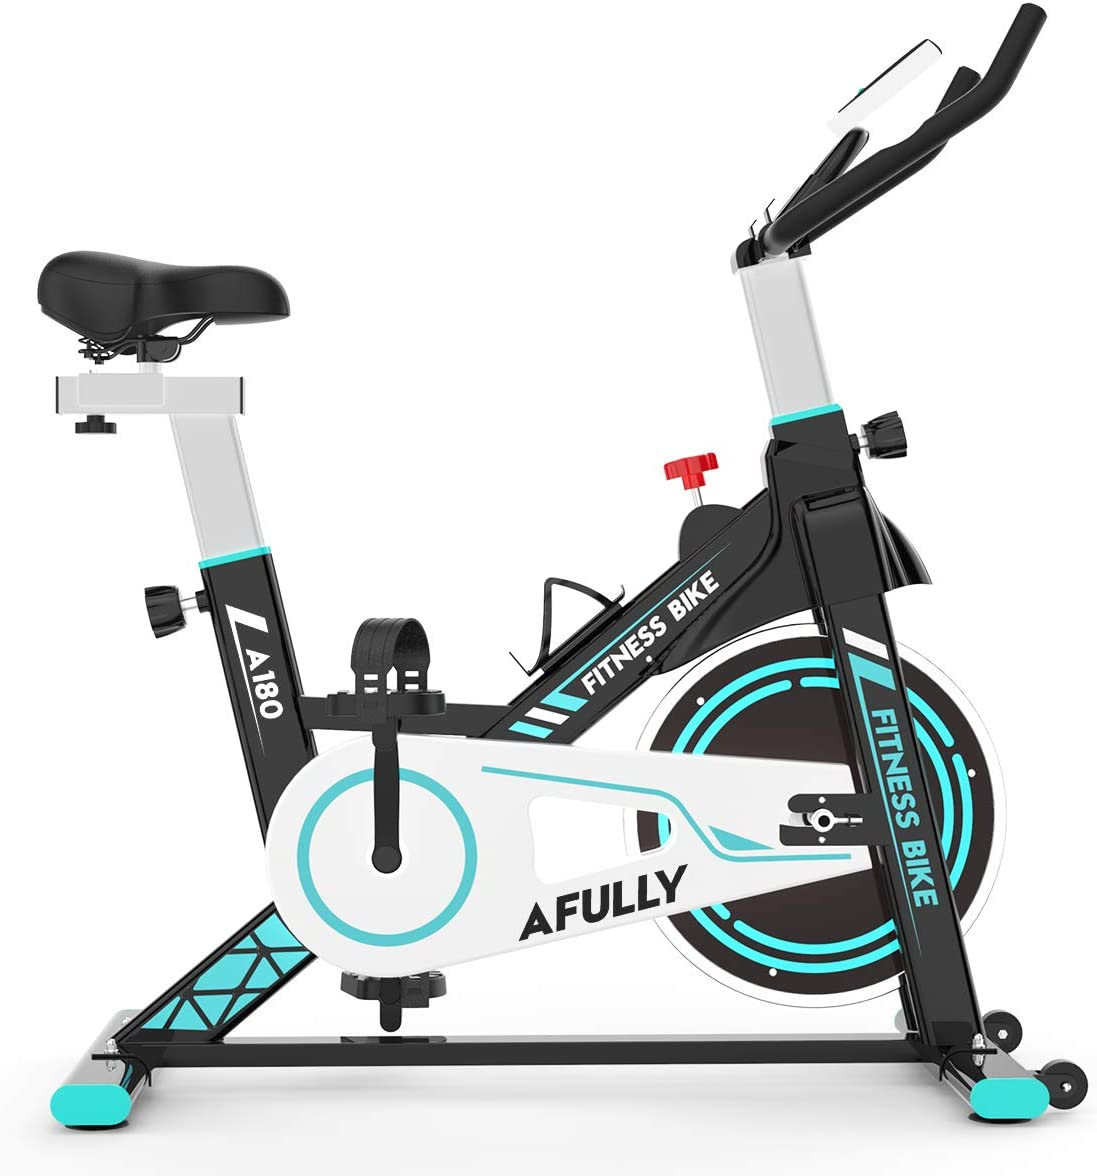 Afully Indoor Exercise Bike, Indoor Cycling Stationary Bike Belt Drive with Adjustable Resistance, LCD Monitor, Pad Phone Holder, Comfortable Cushion Stable and Quiet for Home Cardio Workout